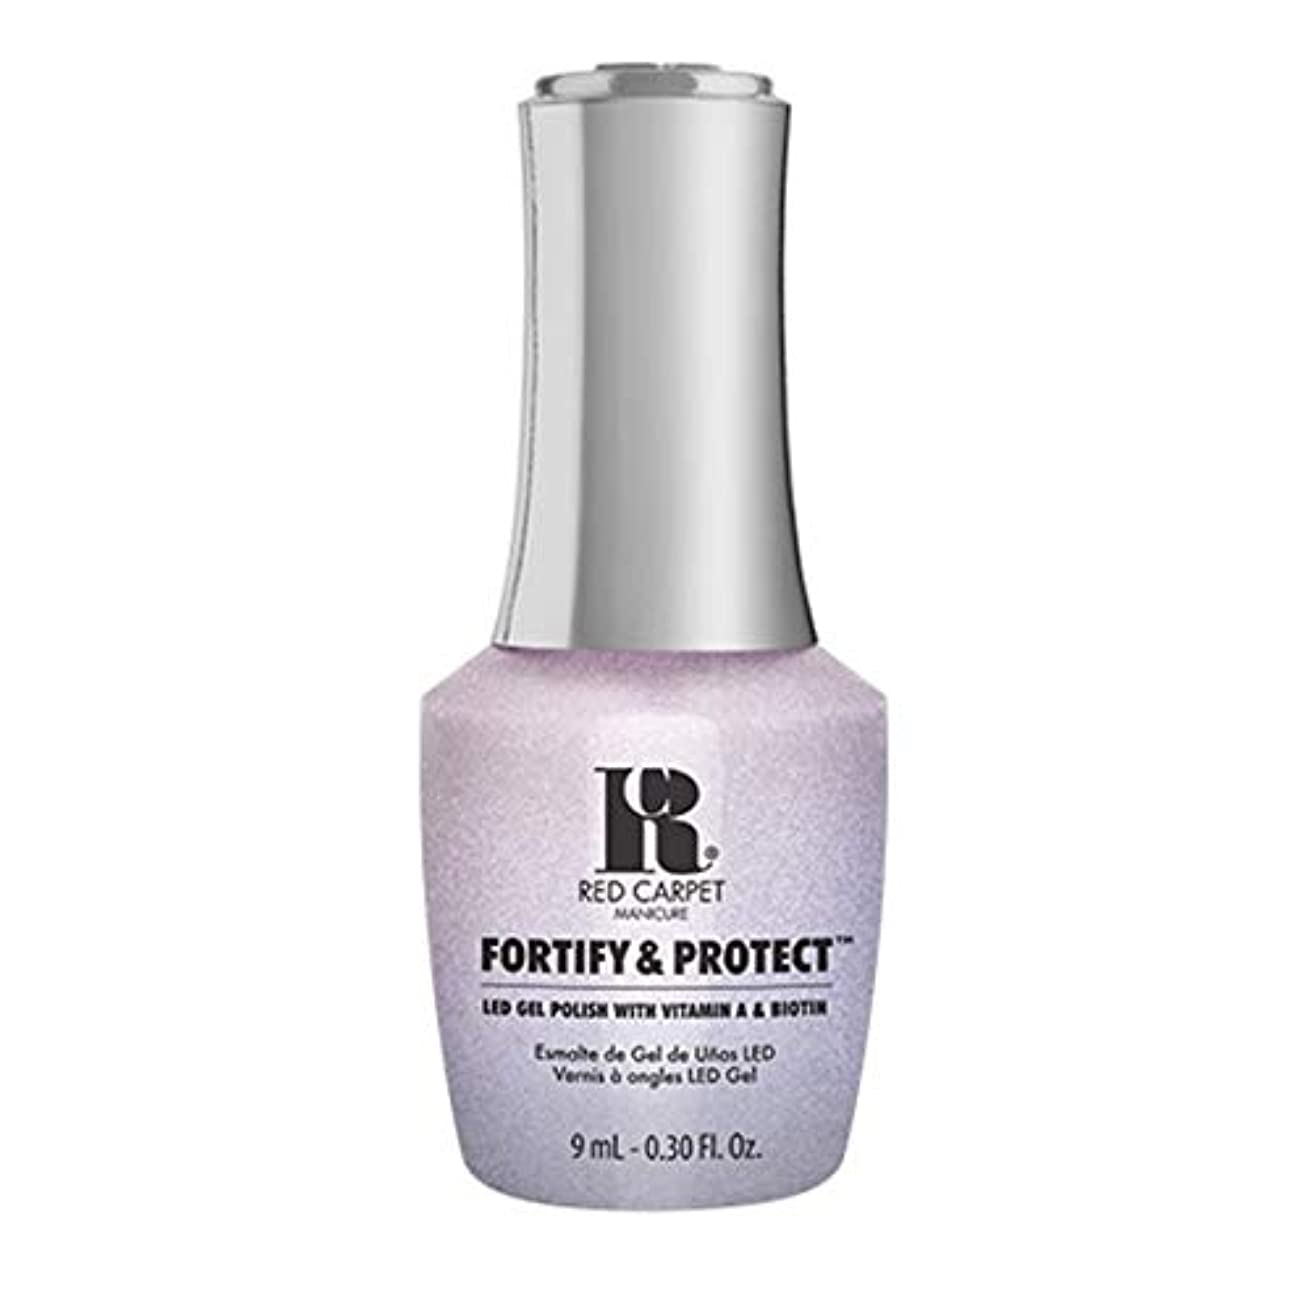 極小雷雨セットアップRed Carpet Manicure - Fortify & Protect - My Diamonds Sparkle - 9ml / 0.30oz